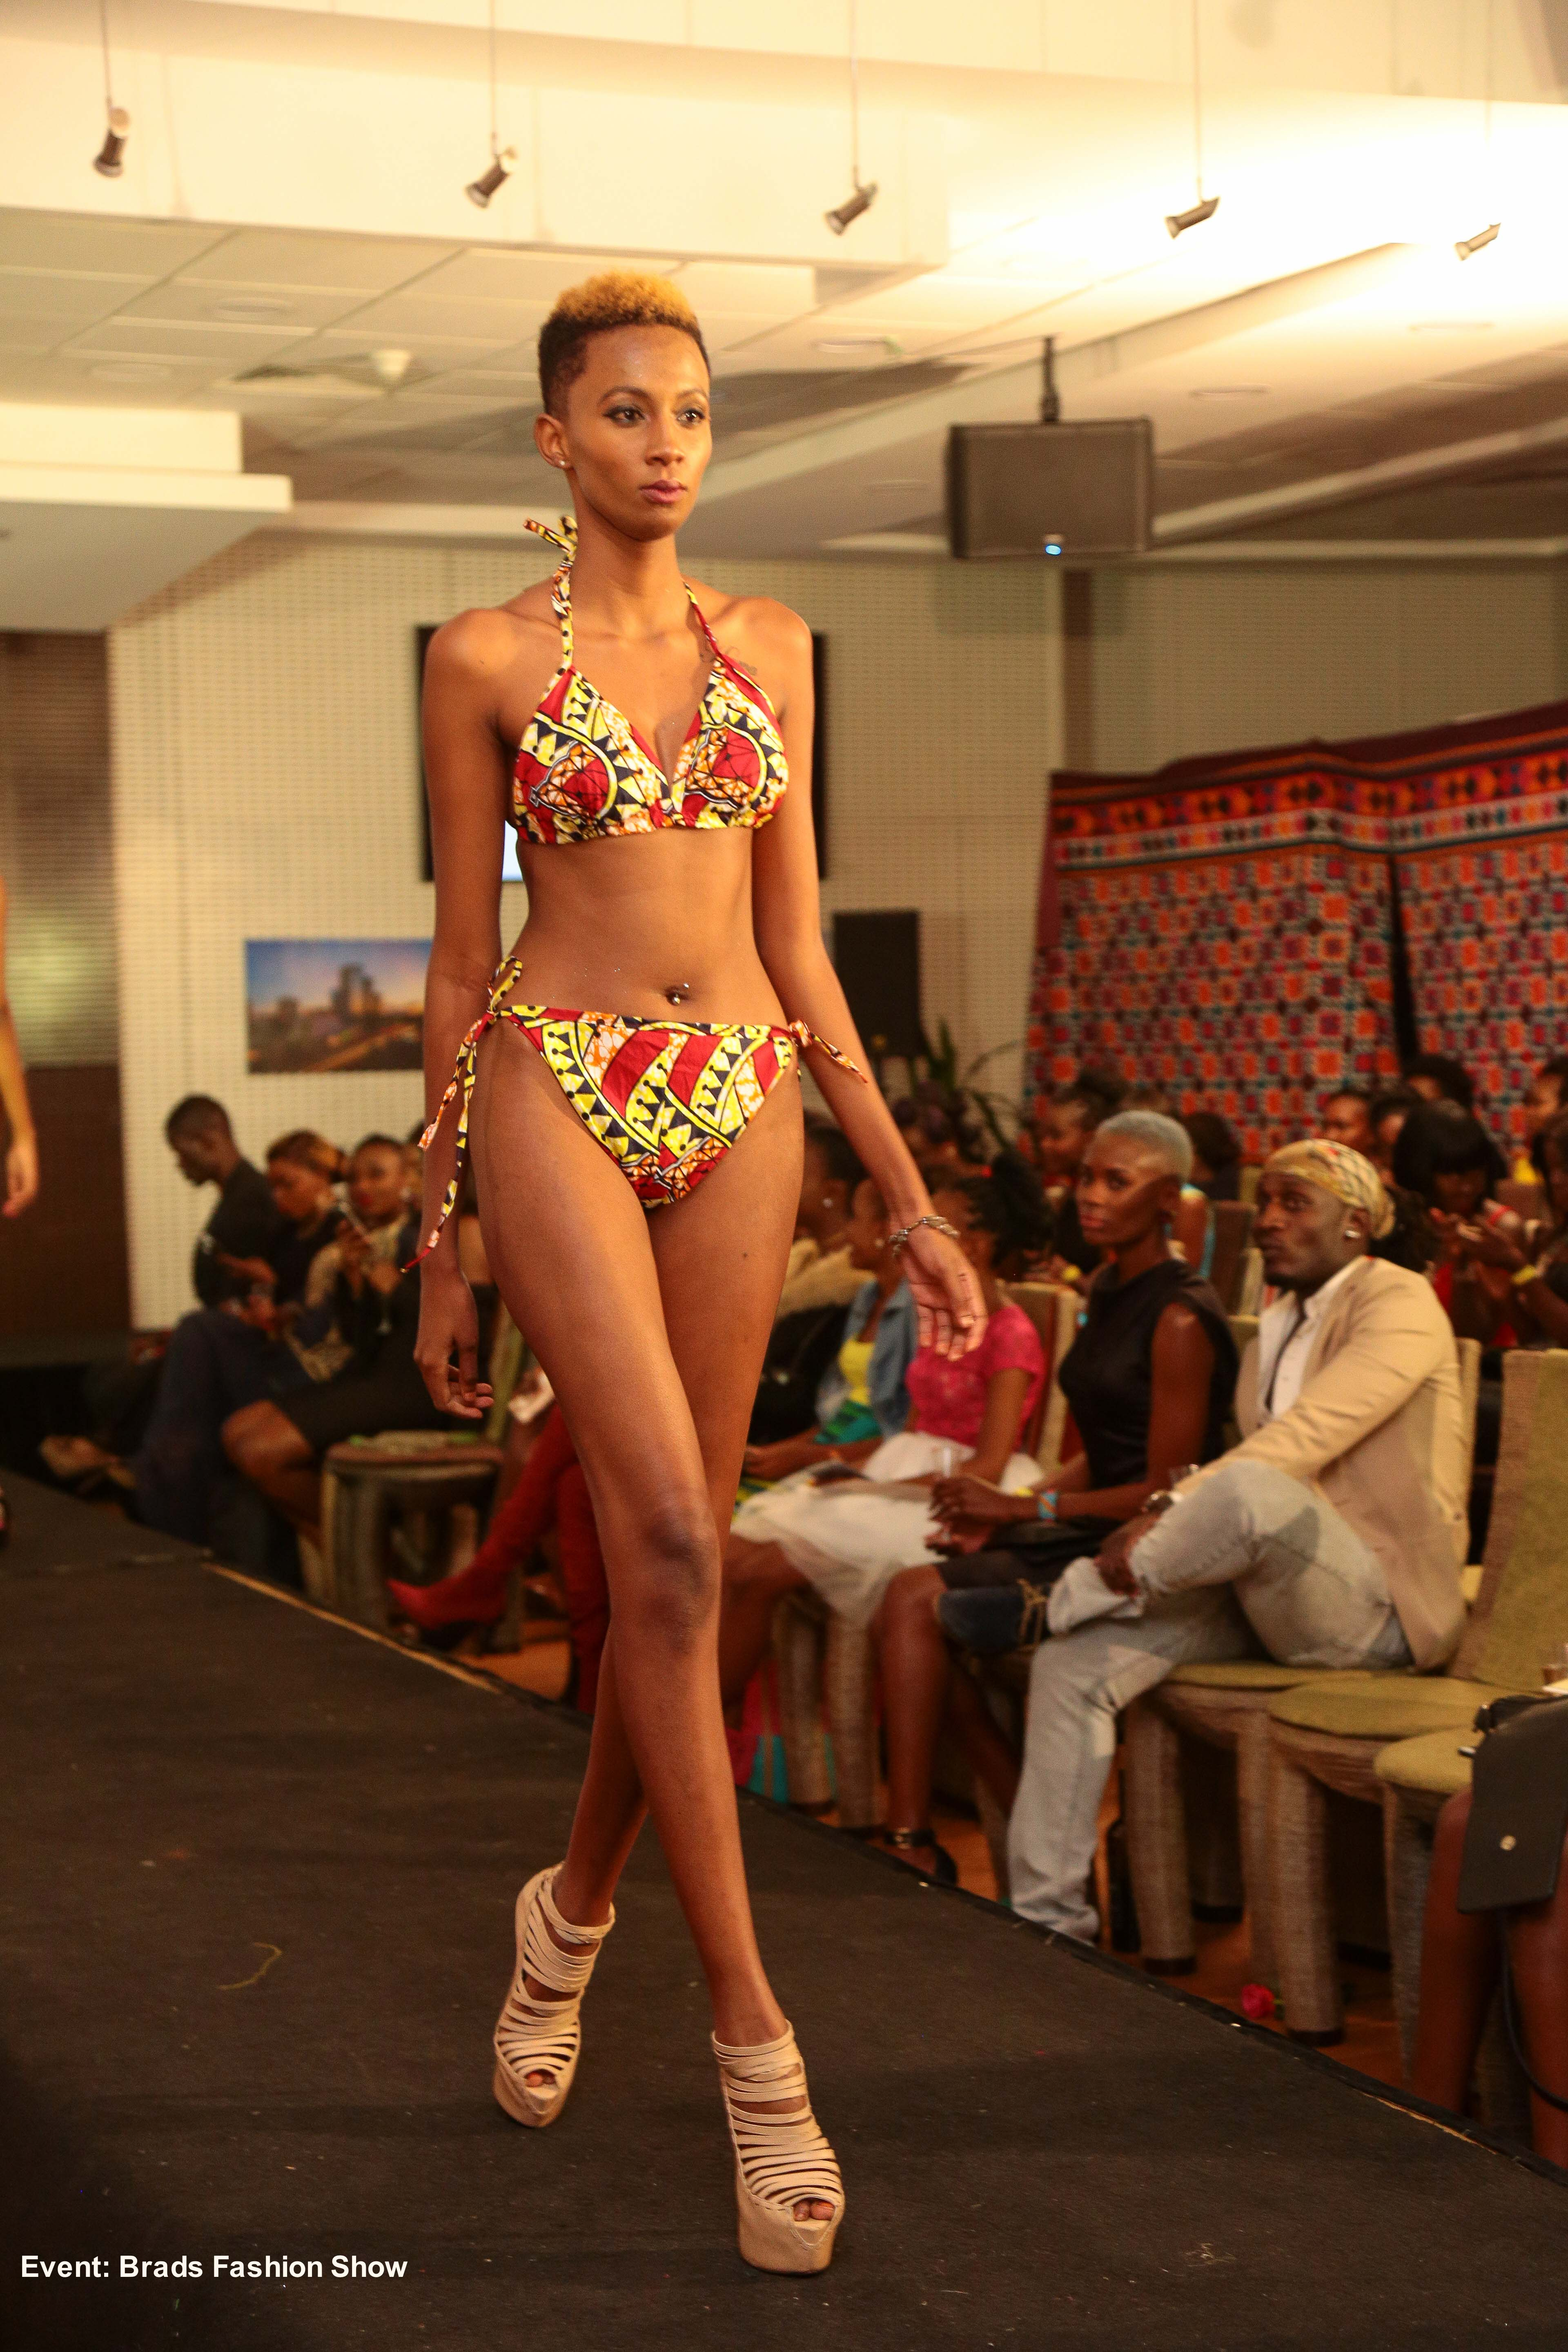 Modeling as a career: runway model